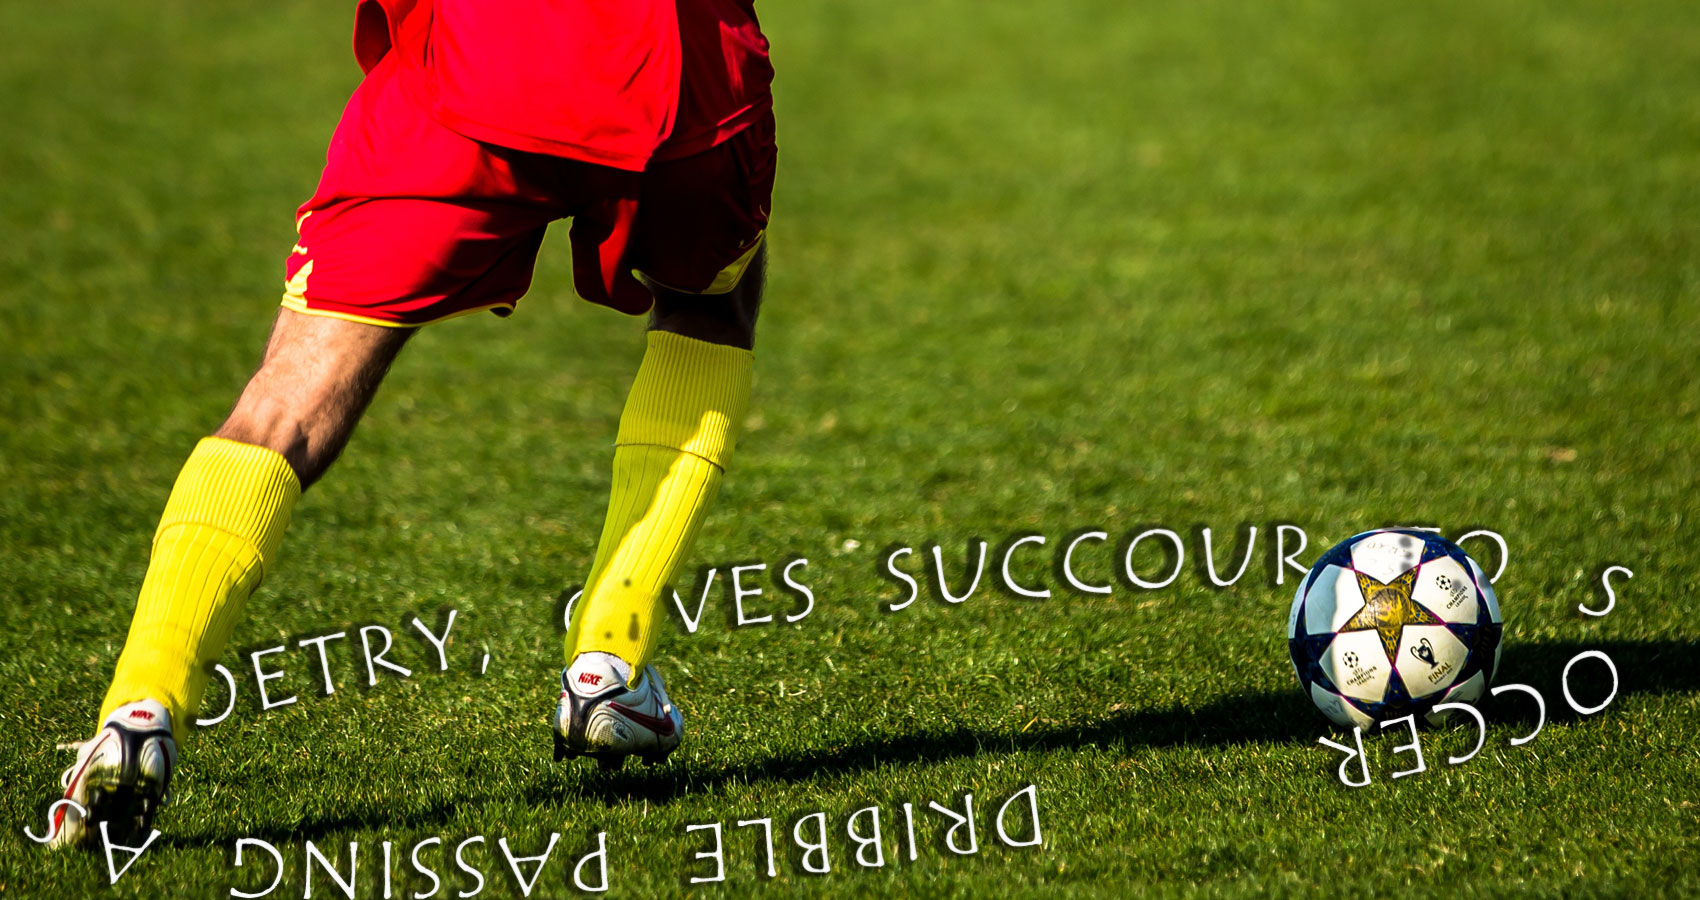 Dribble Passing As Poetry, Gives Succour To Soccer Fans by Michael Shea at Spillwords.com